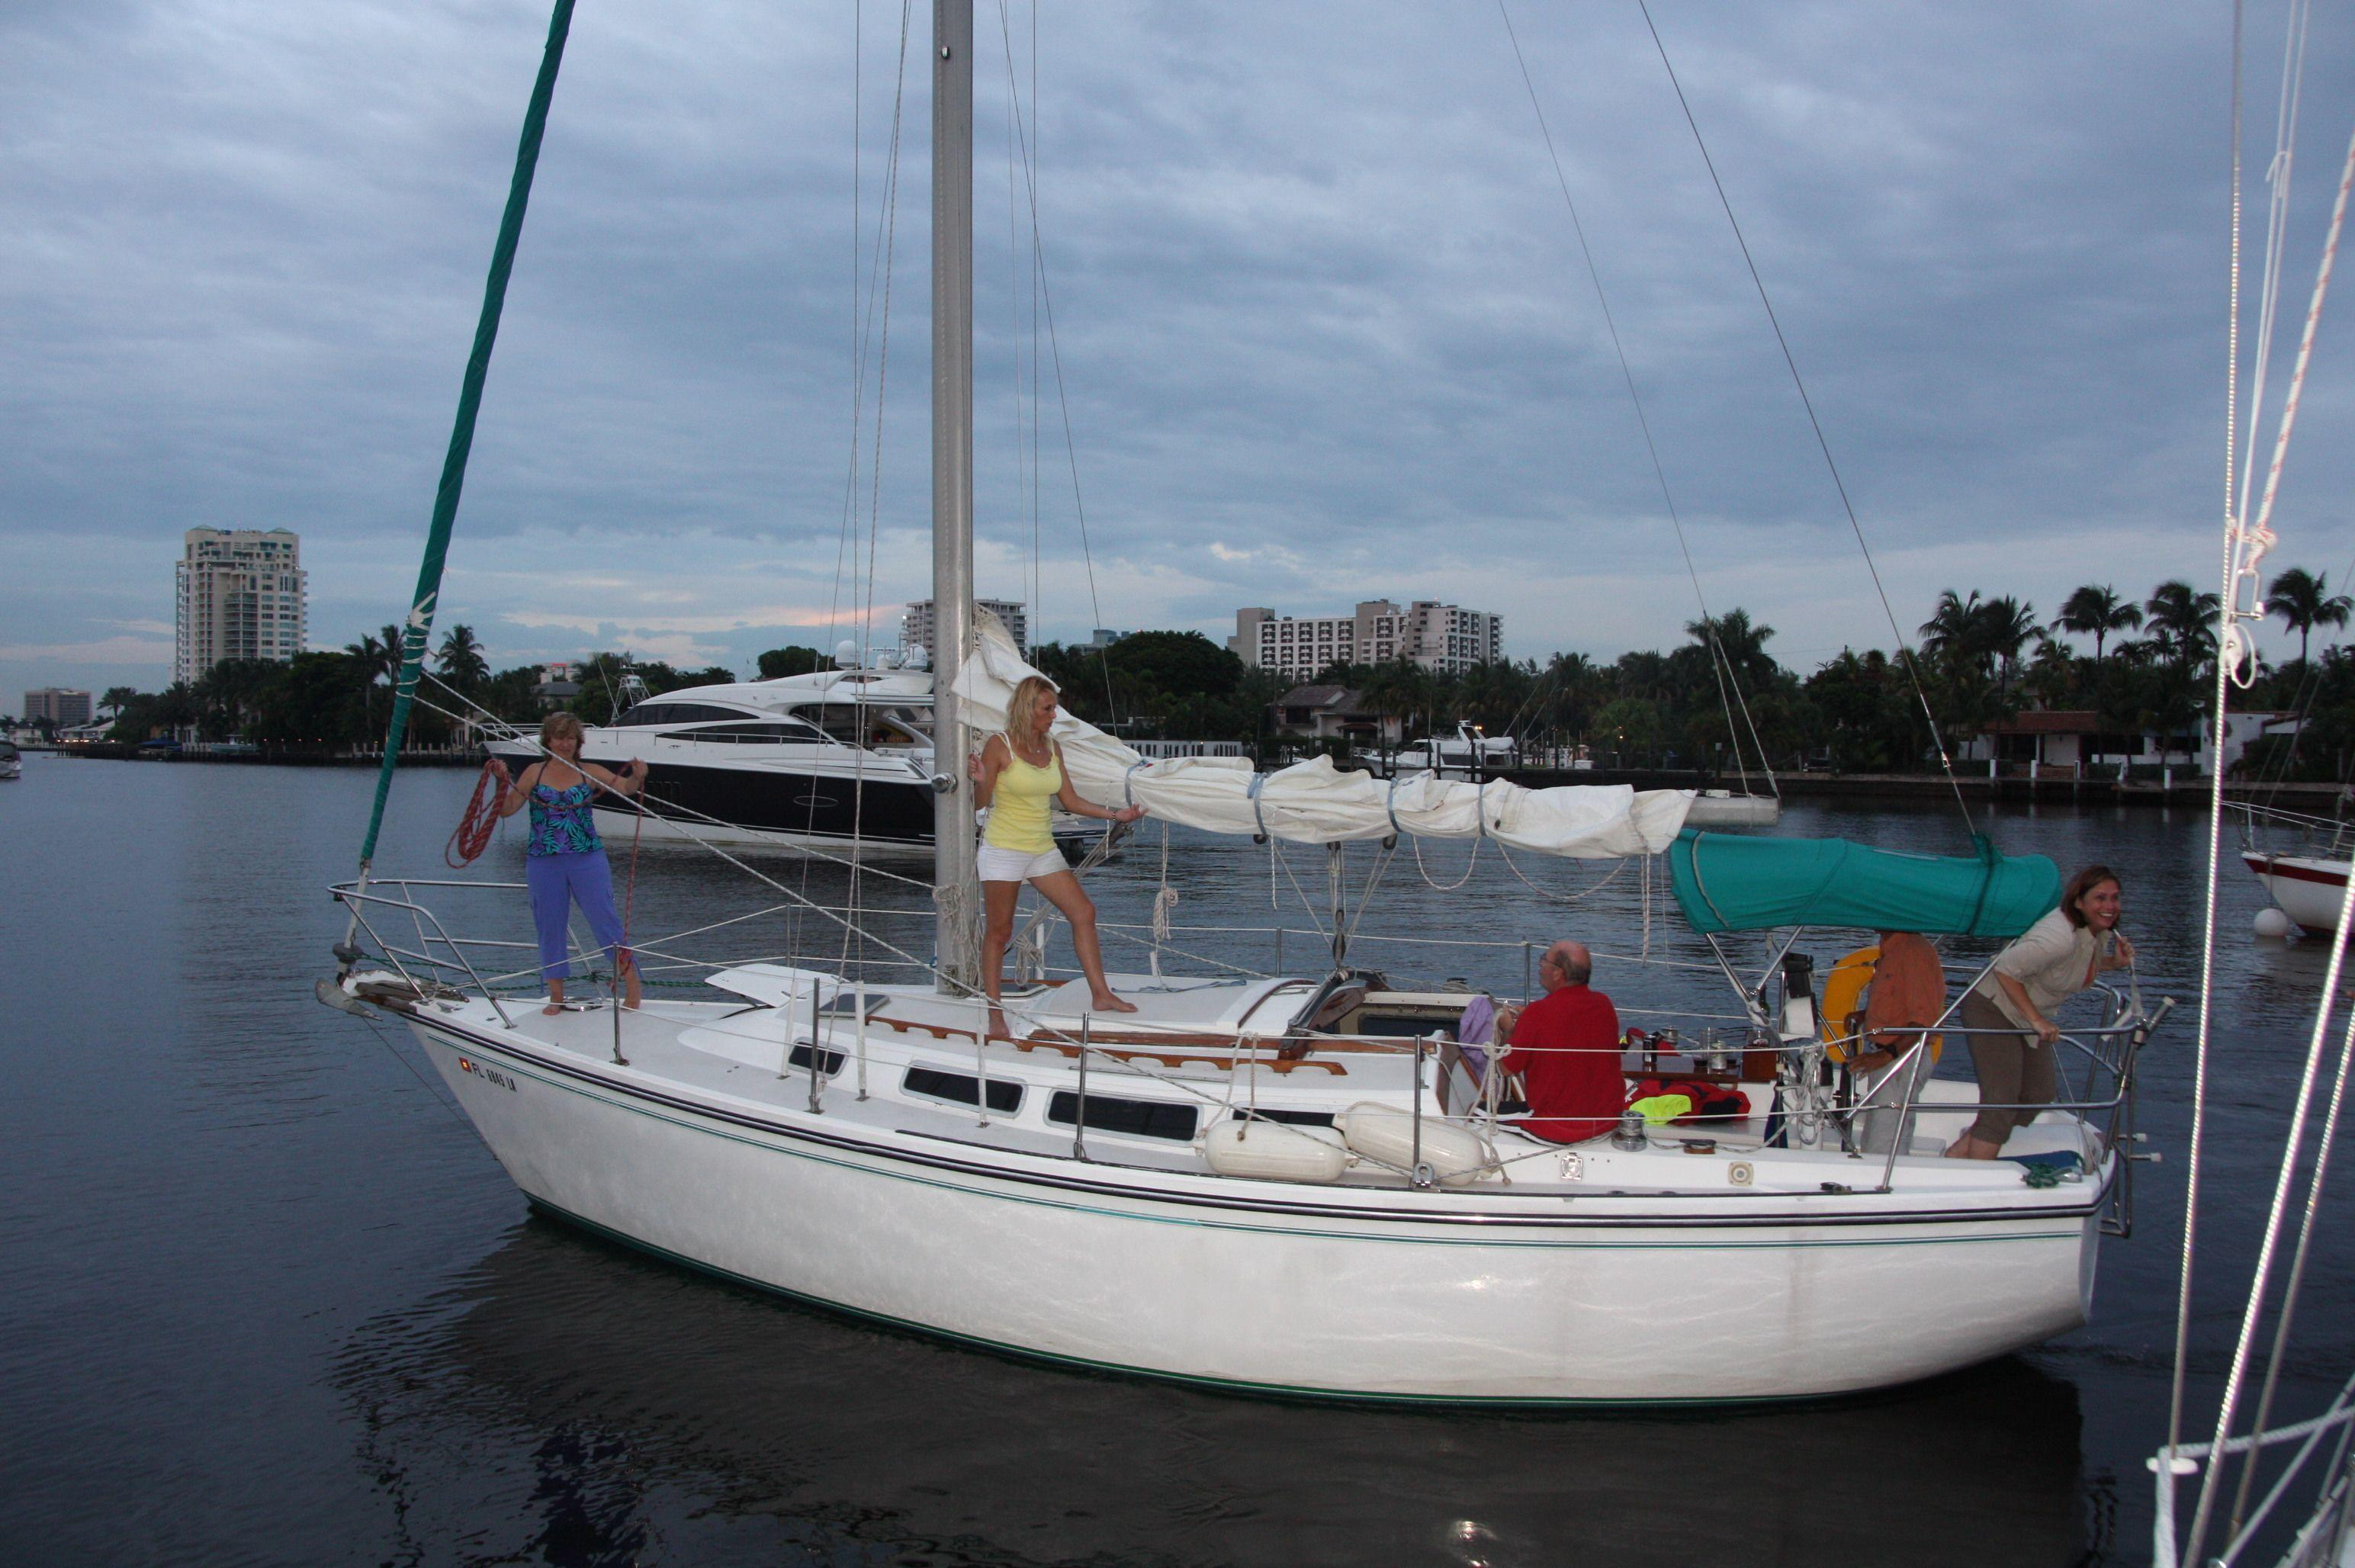 meet commodore singles The purpose of south florida sailors and boaters is to welcome singles and couples, who enjoy boating, in order that members can meet others with similar interests, participate in boating activities and learn safe boating practices through education.